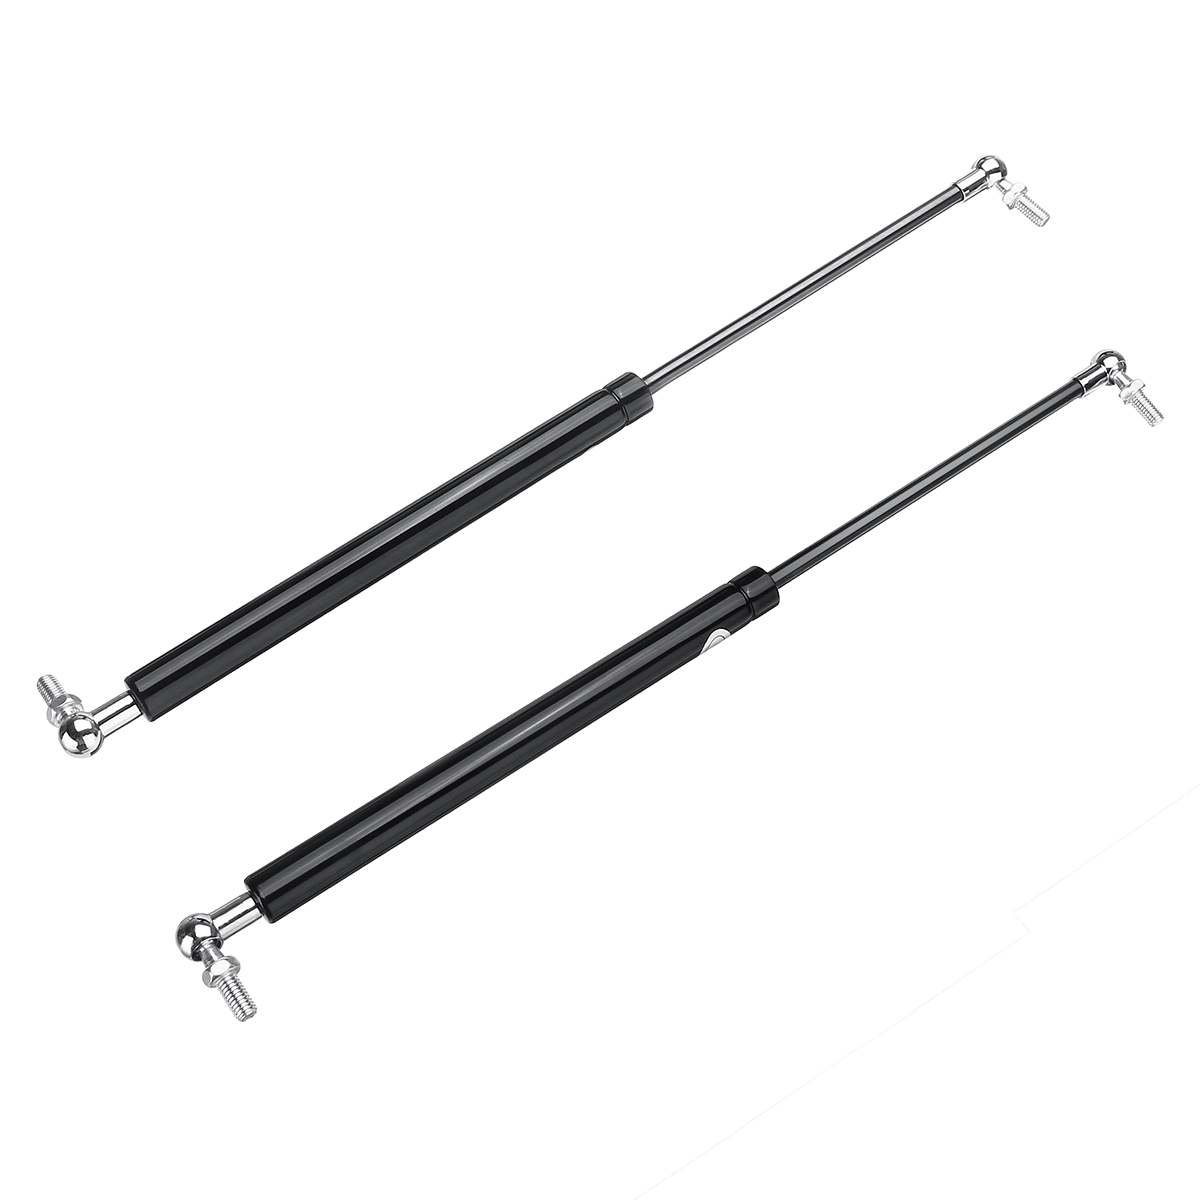 2pcs Gas Spring Support Struts 430mmx150N 8mm Shaft For RV Caravan Trailer Tent Toolbox New  Gas Struts